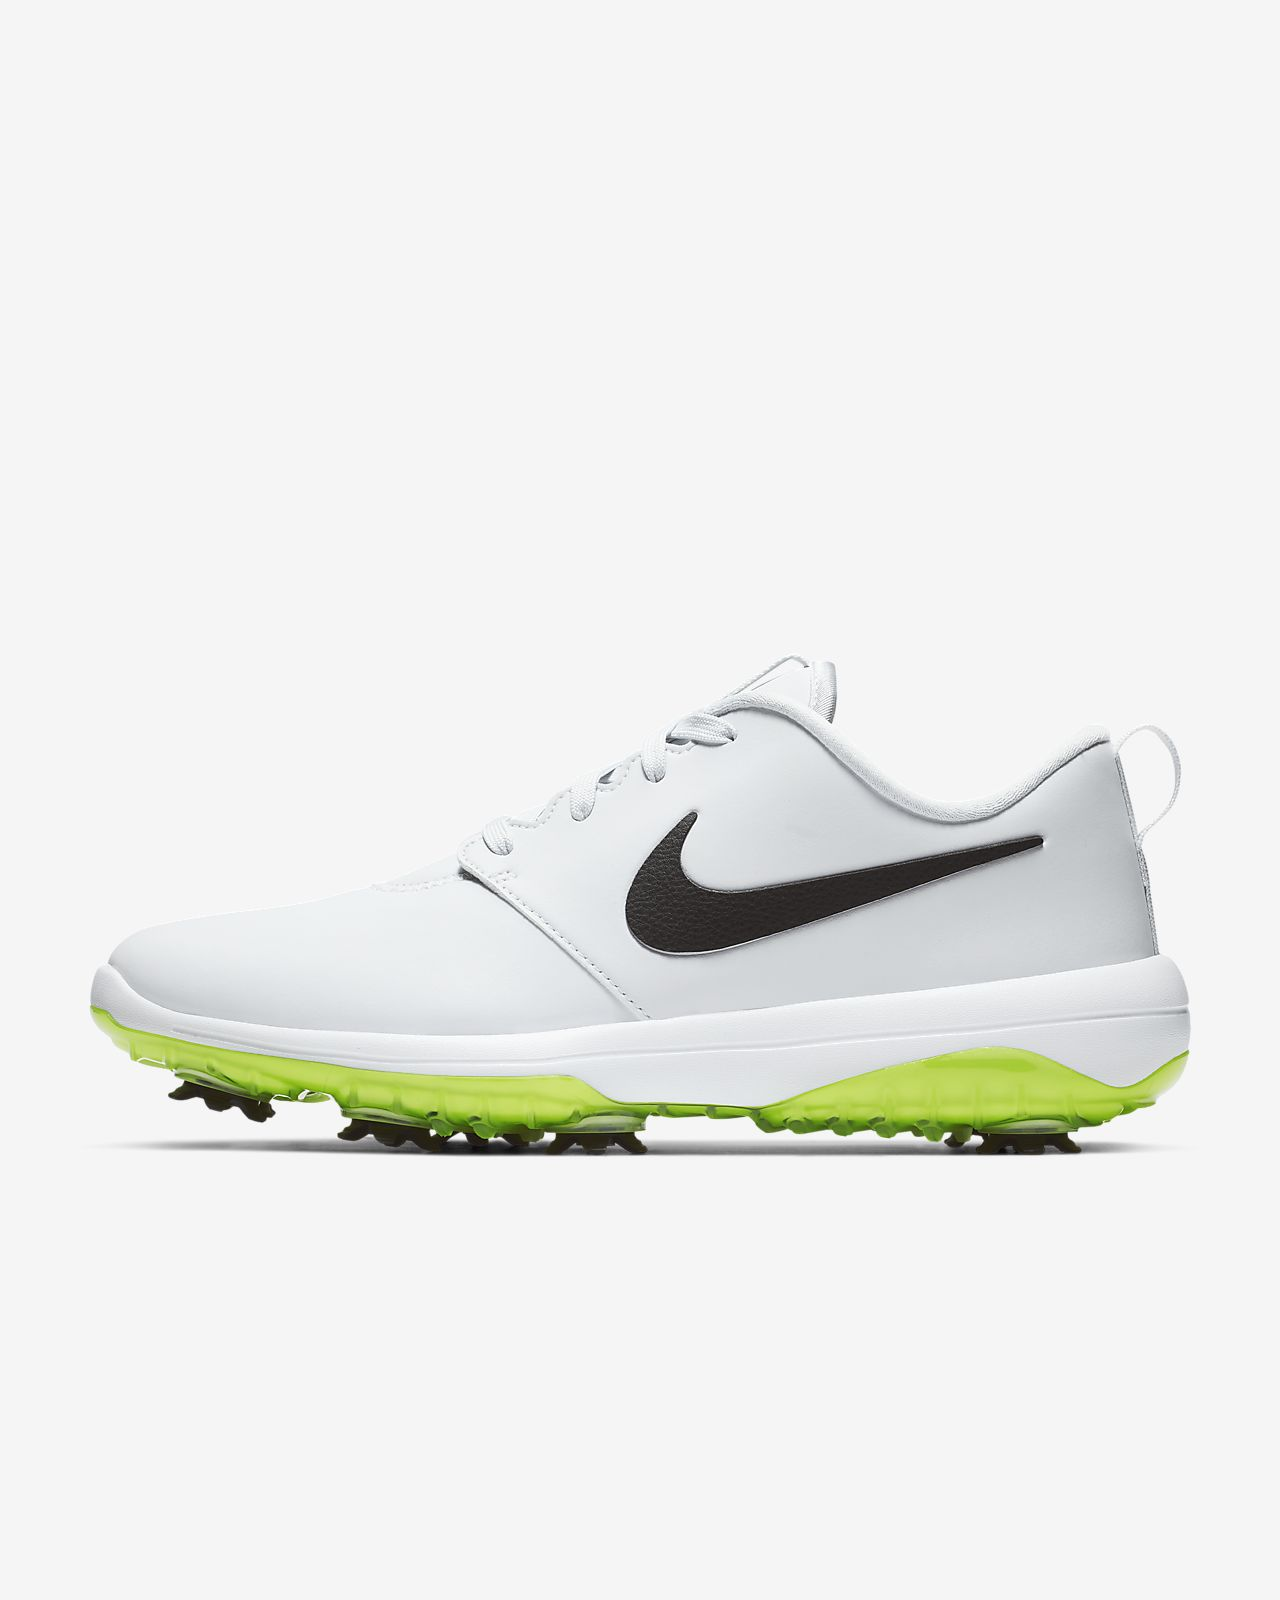 d28982dc62a34 Nike Roshe G Tour Men s Golf Shoe. Nike.com